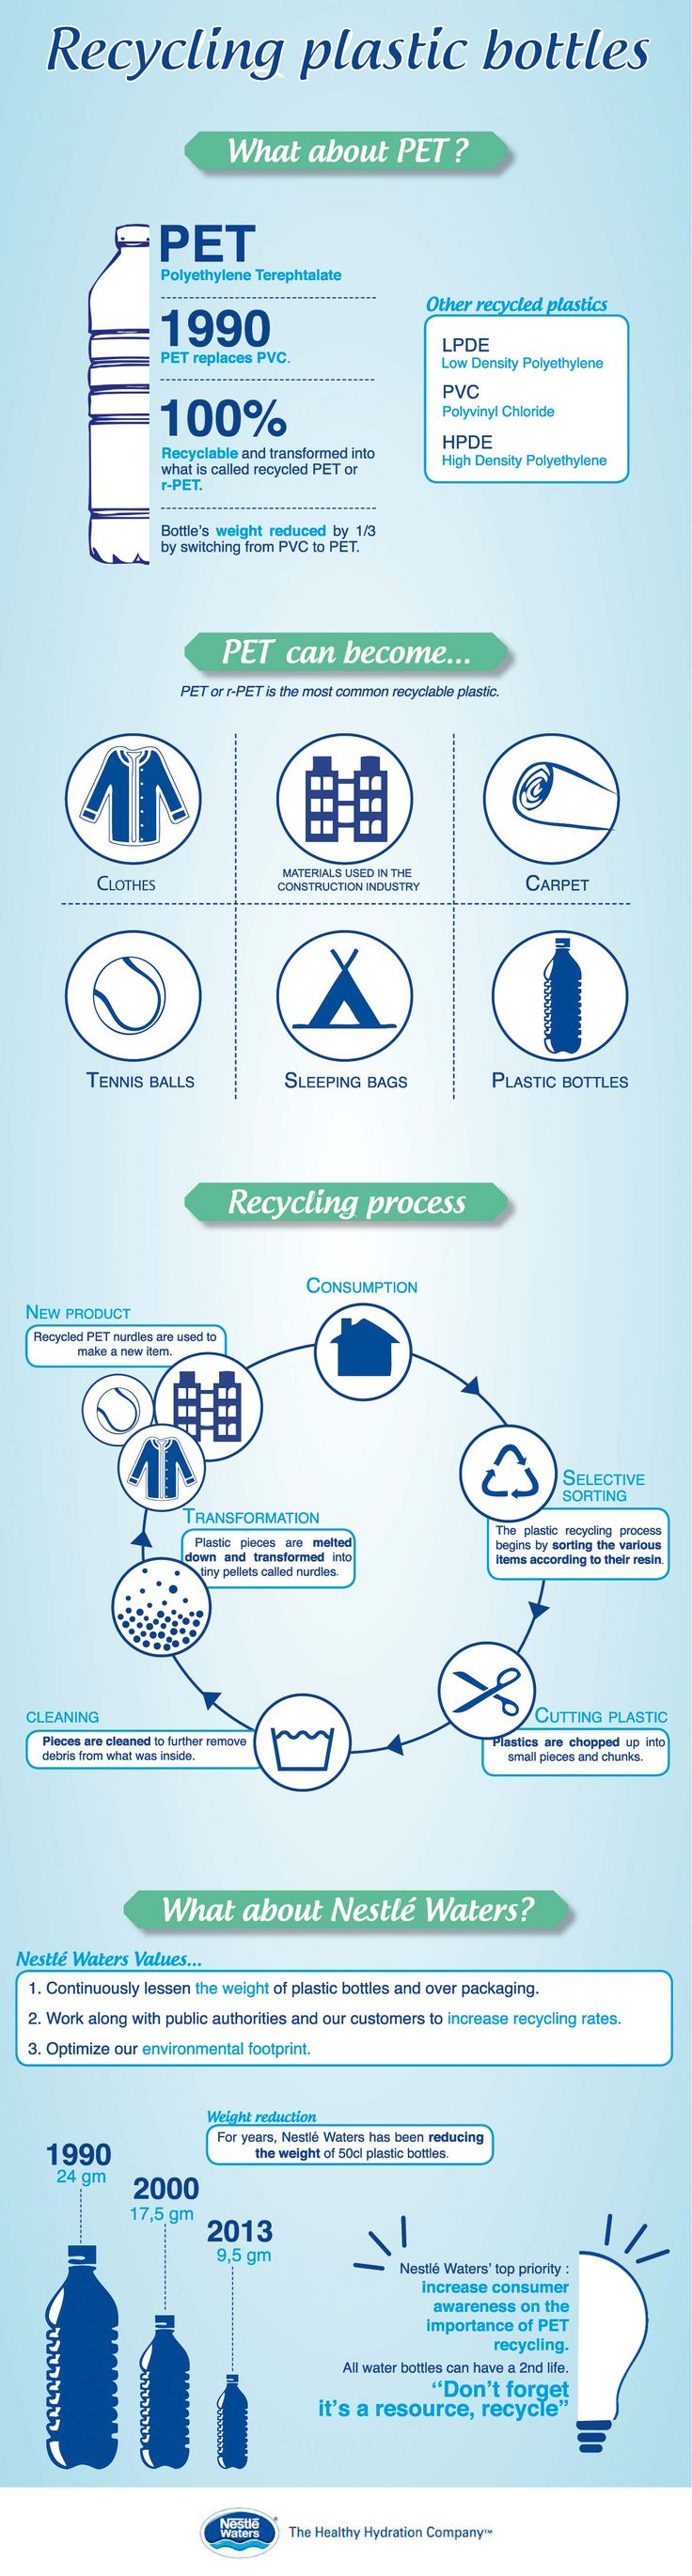 #INFOgraphic > Pet Recycling Process: Do you know the difference between PVC and PET plastic ? PET has been a breakthrough for the packaging industry since 1990 and here you have the chance to learn about the basics of the plastic bottles' recycling process.  > http://infographicsmania.com/pet-recycling-process/?utm_source=Pinterest&utm_medium=INFOGRAPHICSMANIA&utm_campaign=SNAP